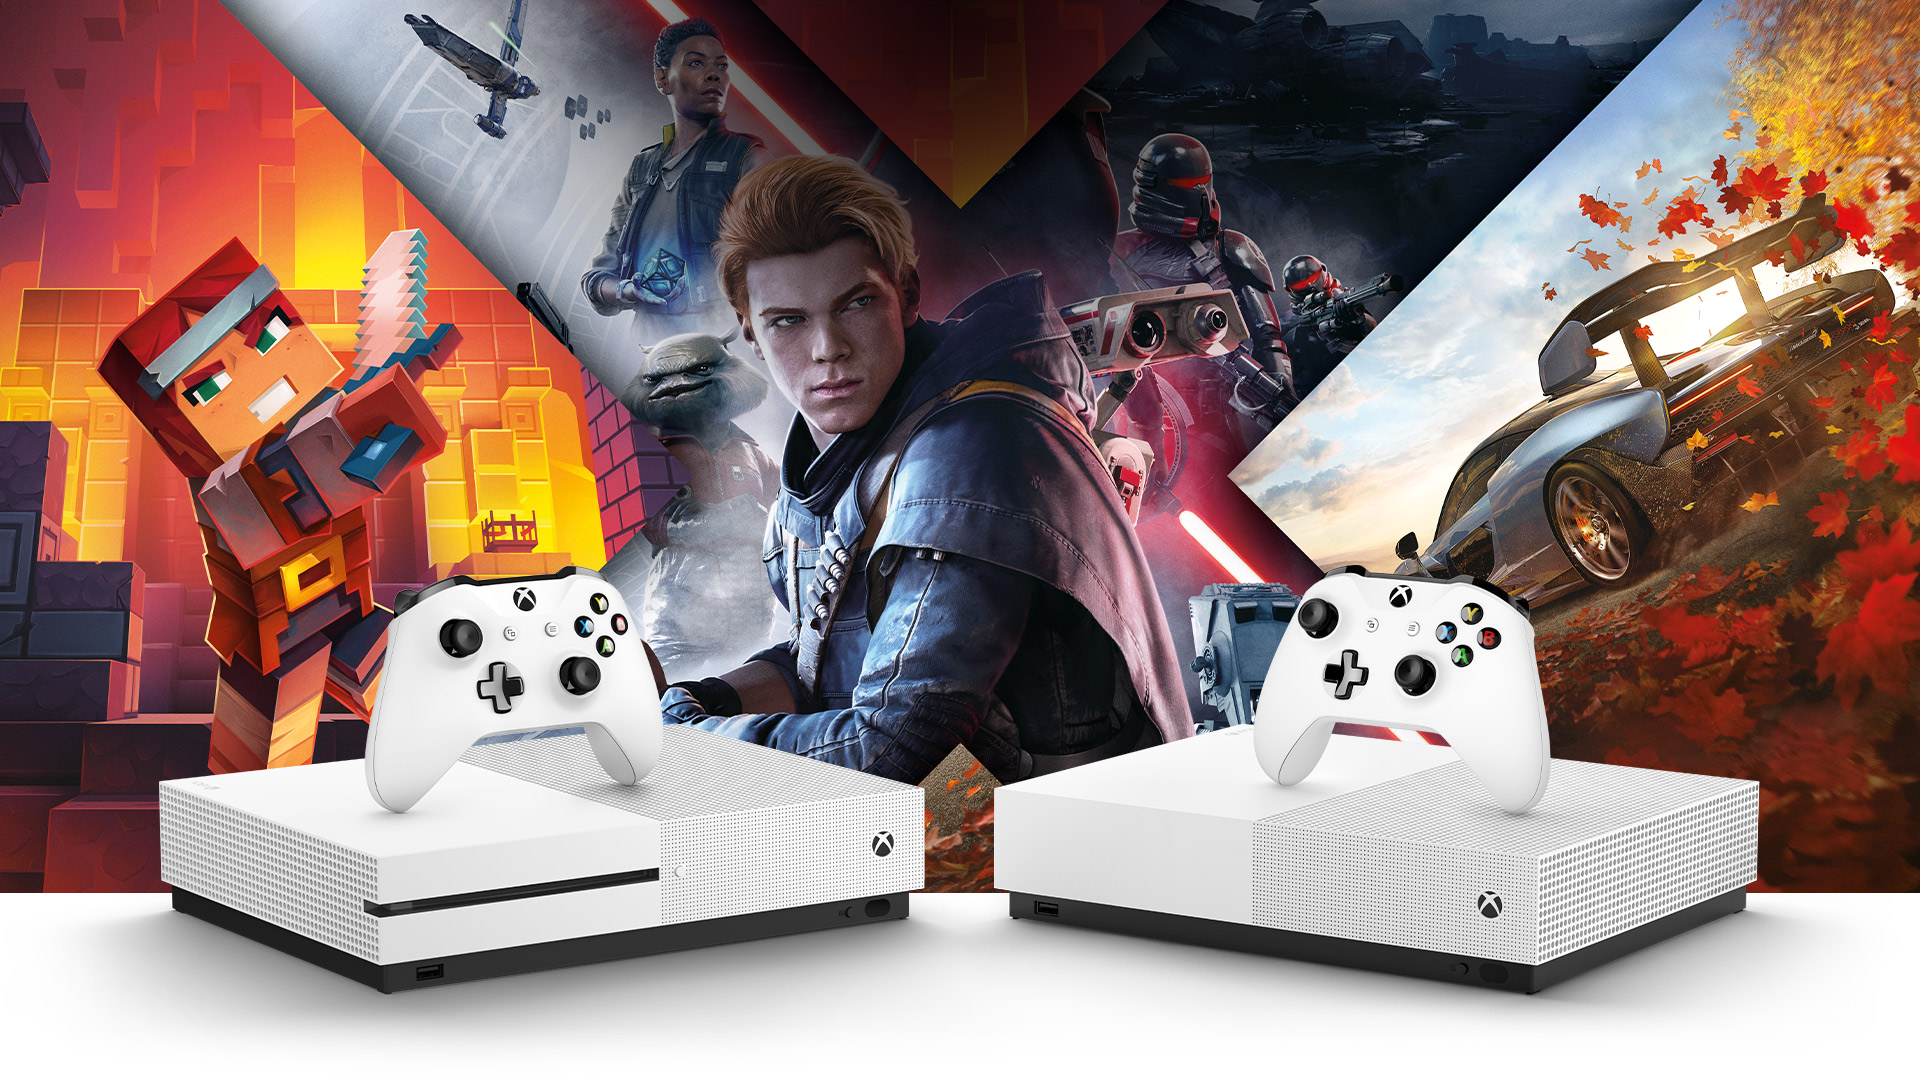 Vue de face des consoles Xbox One S et Xbox One S All Digital entourées d'illustrations de Minecraft, Forza Horizon 4 et Star Wars Jedi Fallen Order